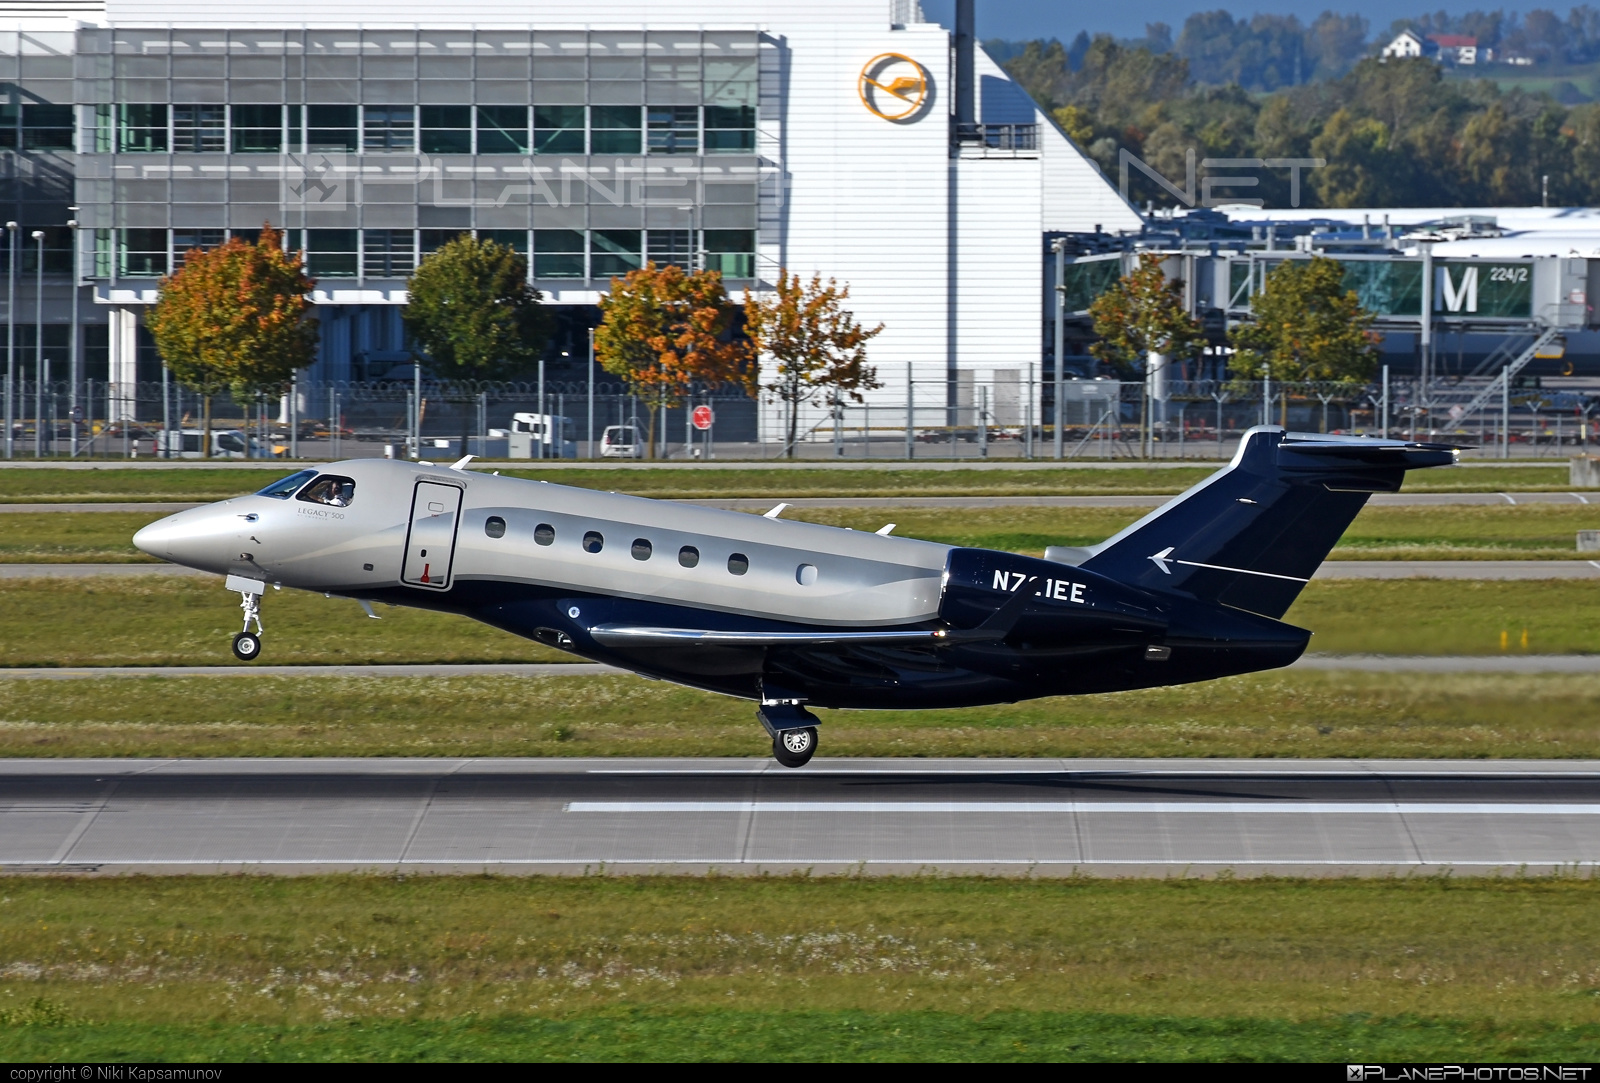 Embraer Legacy 500 (EMB-550) - N721EE operated by Embraer Executive Aircraft, Inc. #emb550 #embraer #embraer550 #embraerlegacy #legacy500